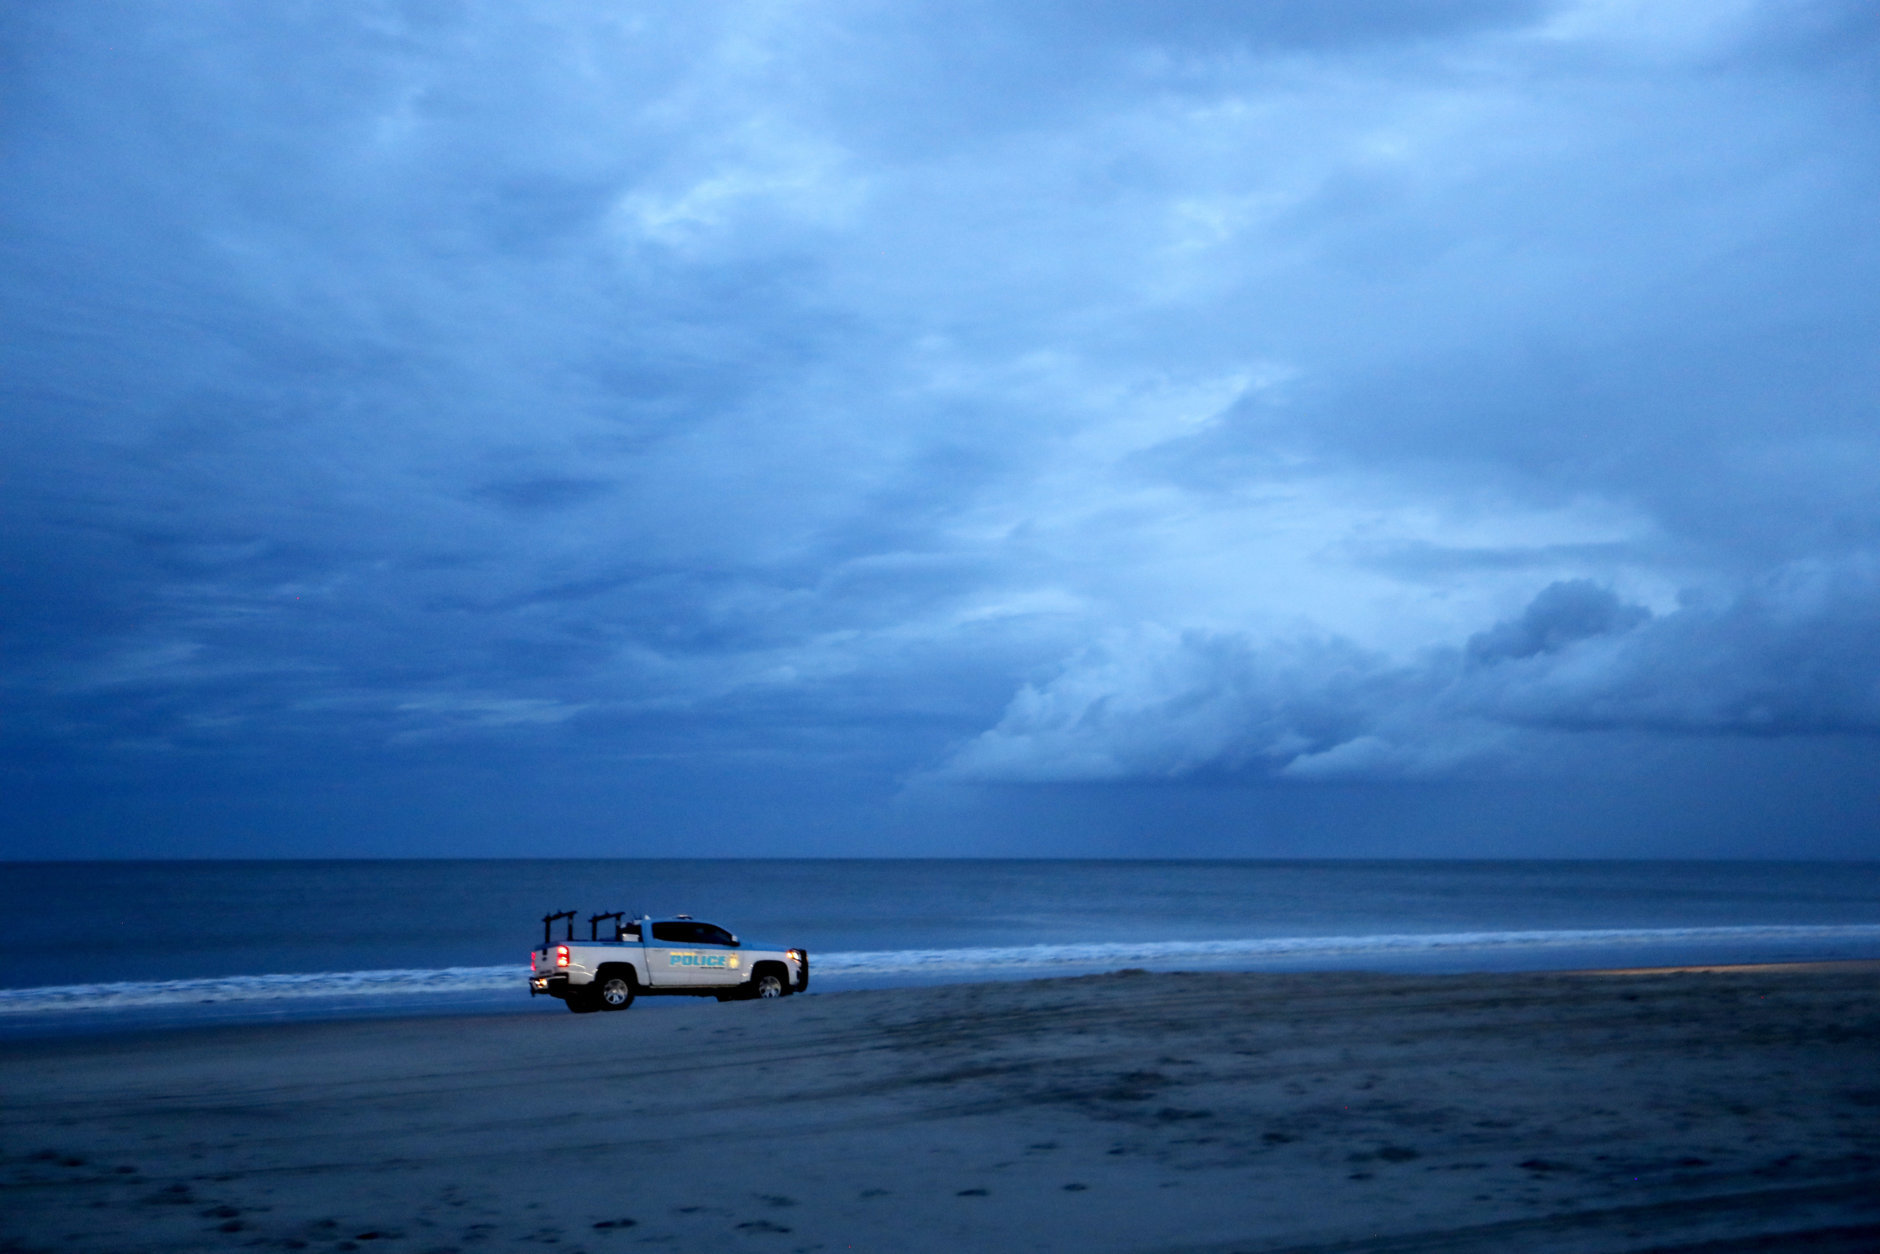 A police vehicle patrols the beach after an evening curfew went into effect as Hurricane Florence approaches Myrtle Beach, S.C., Thursday, Sept. 13, 2018. (AP Photo/David Goldman)